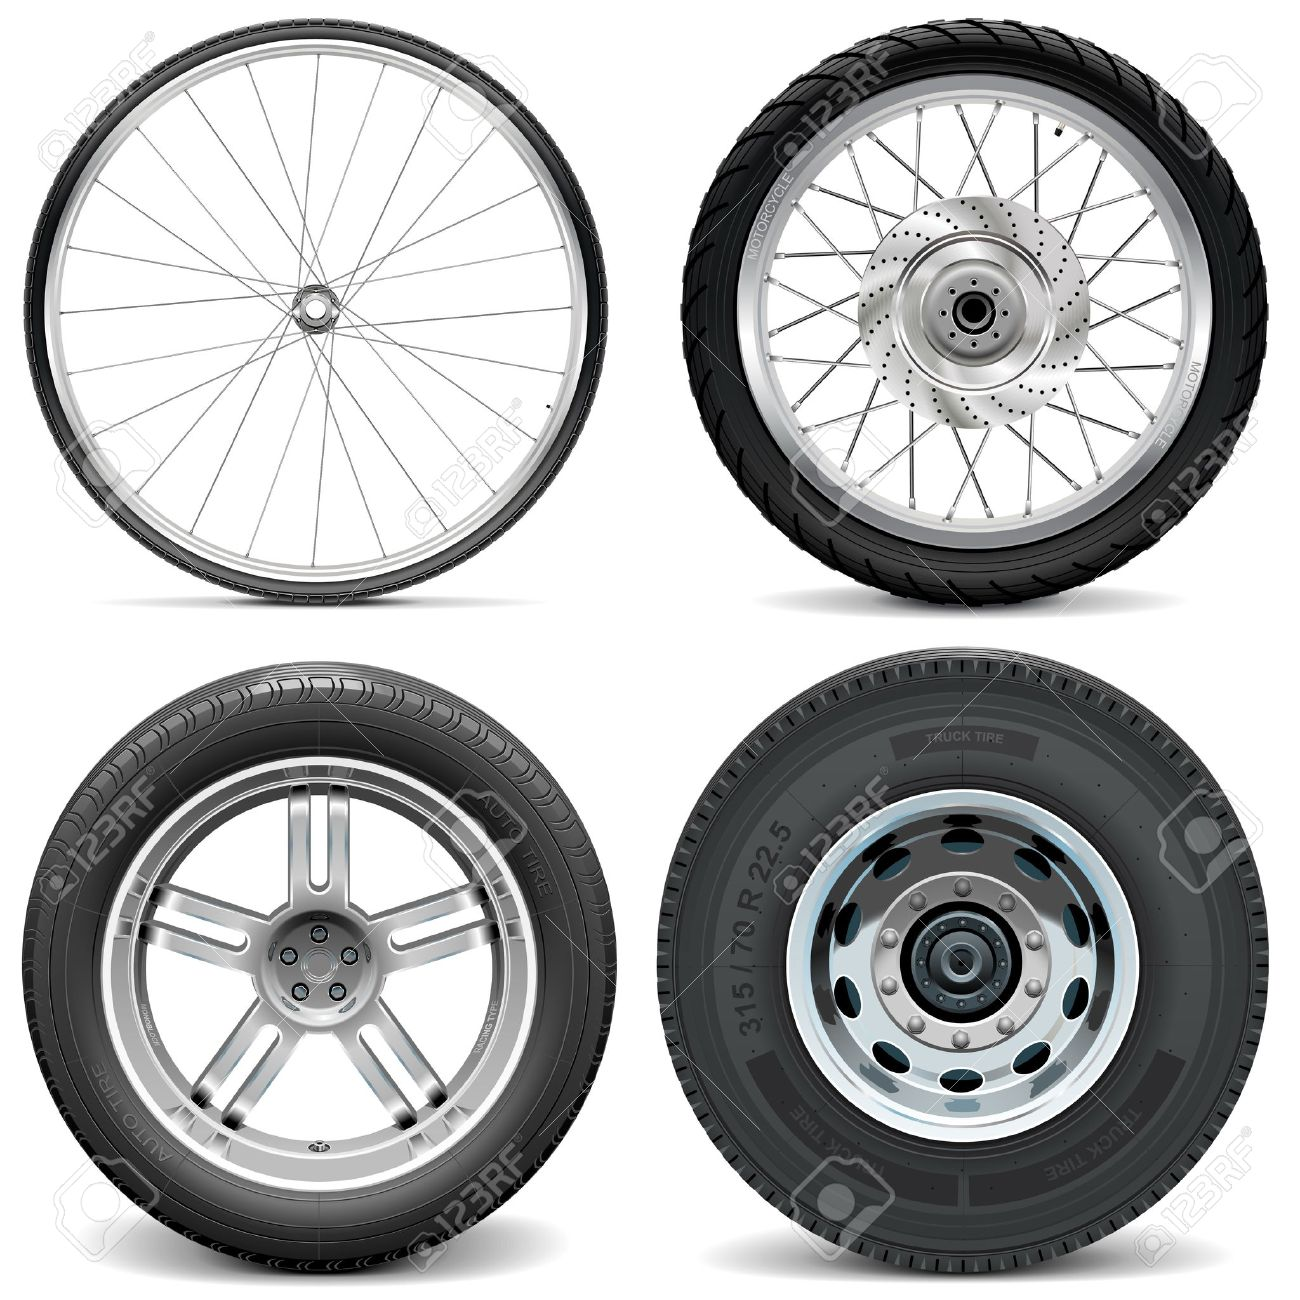 Vector Tires for Bicycle Motorcycle Car and Truck isolated on white background - 38012640